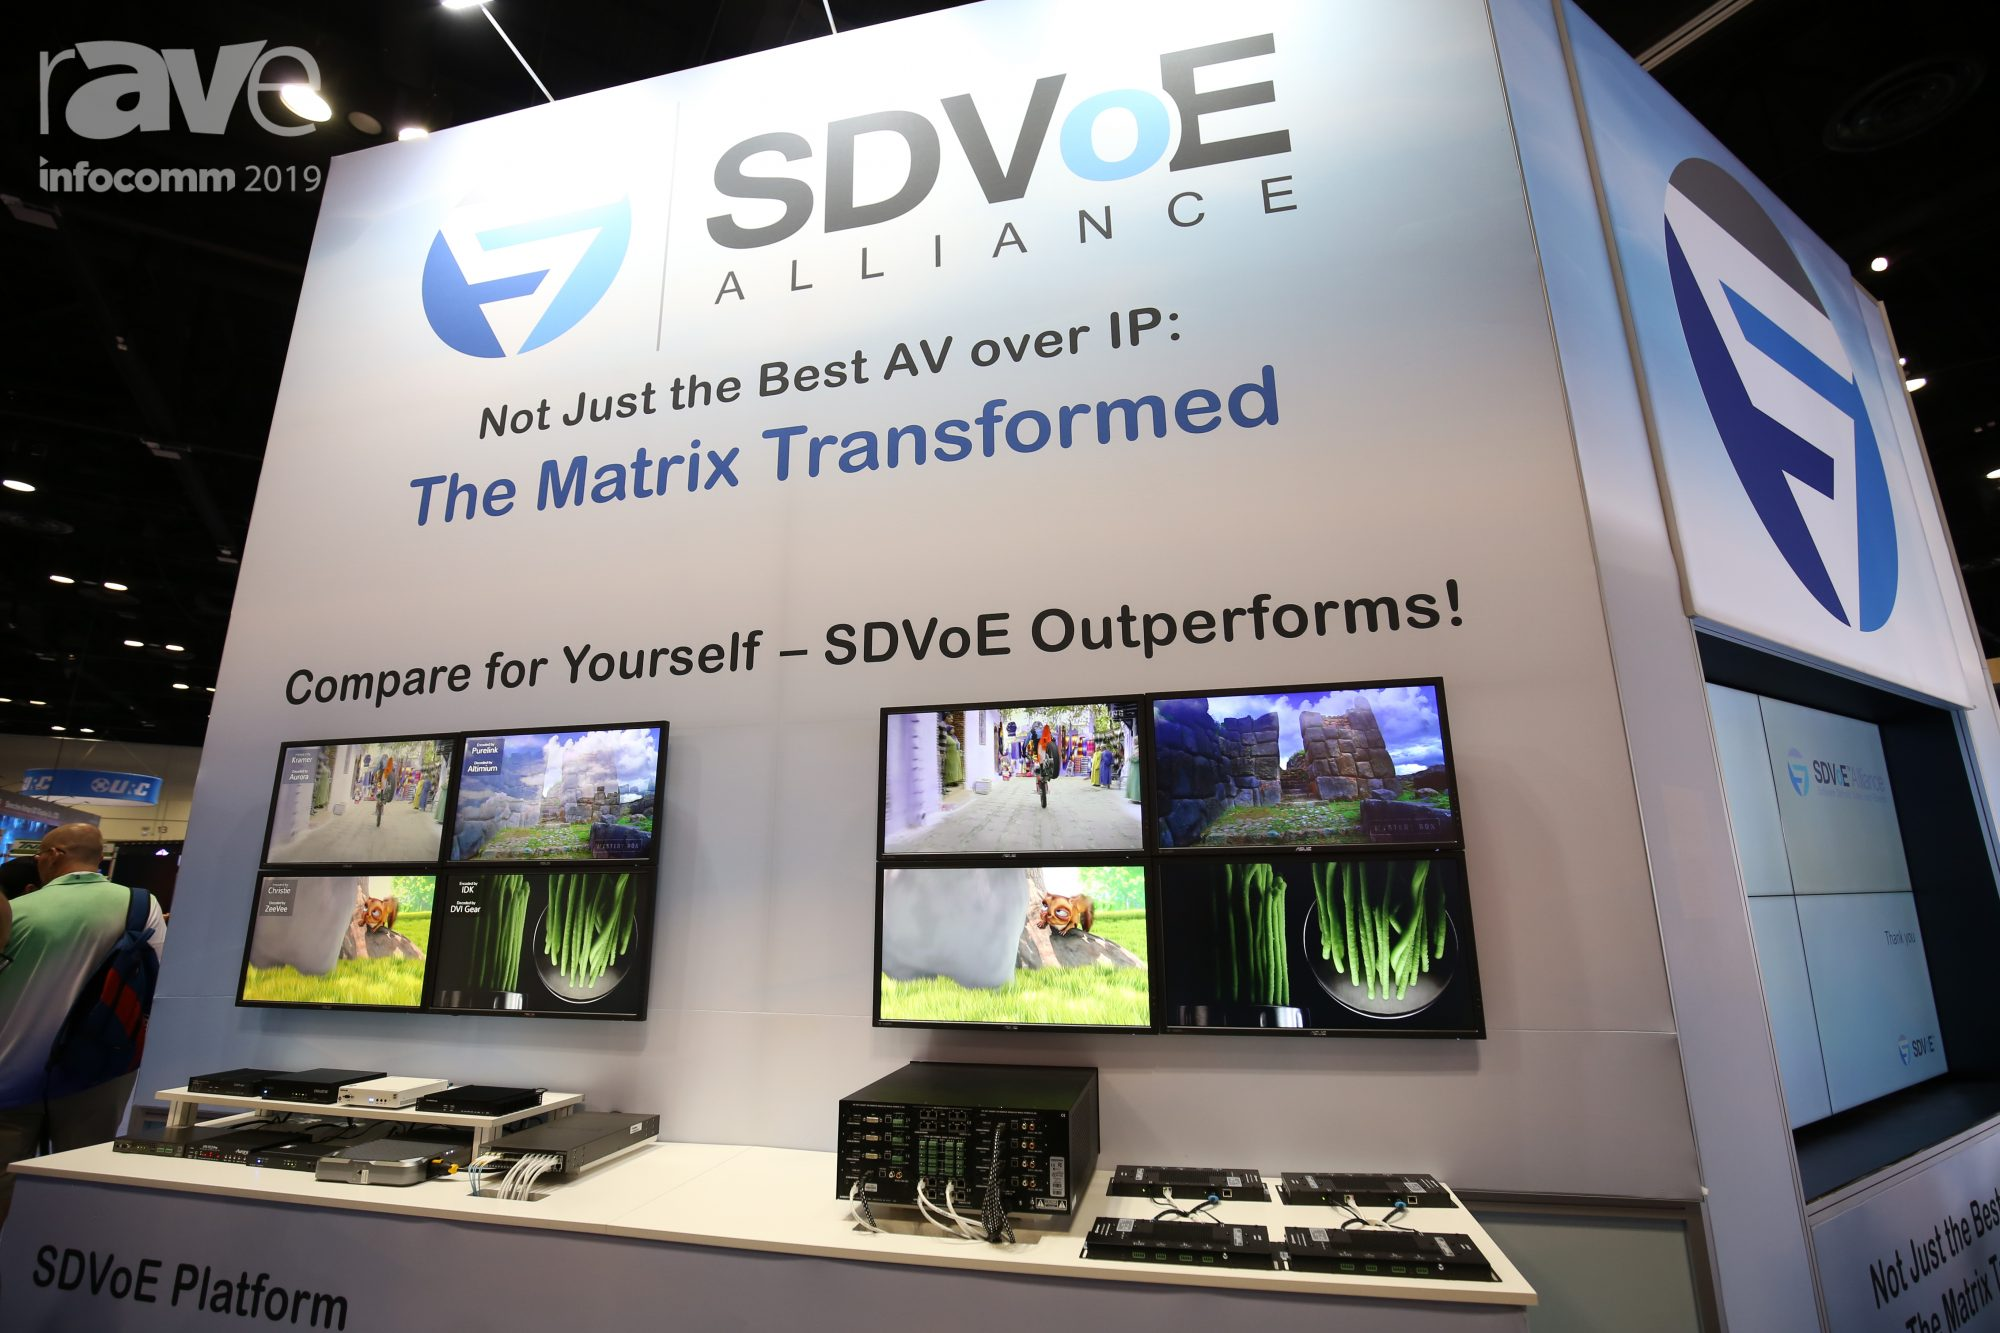 Hands on with the New Matrix Switch - SDVoE